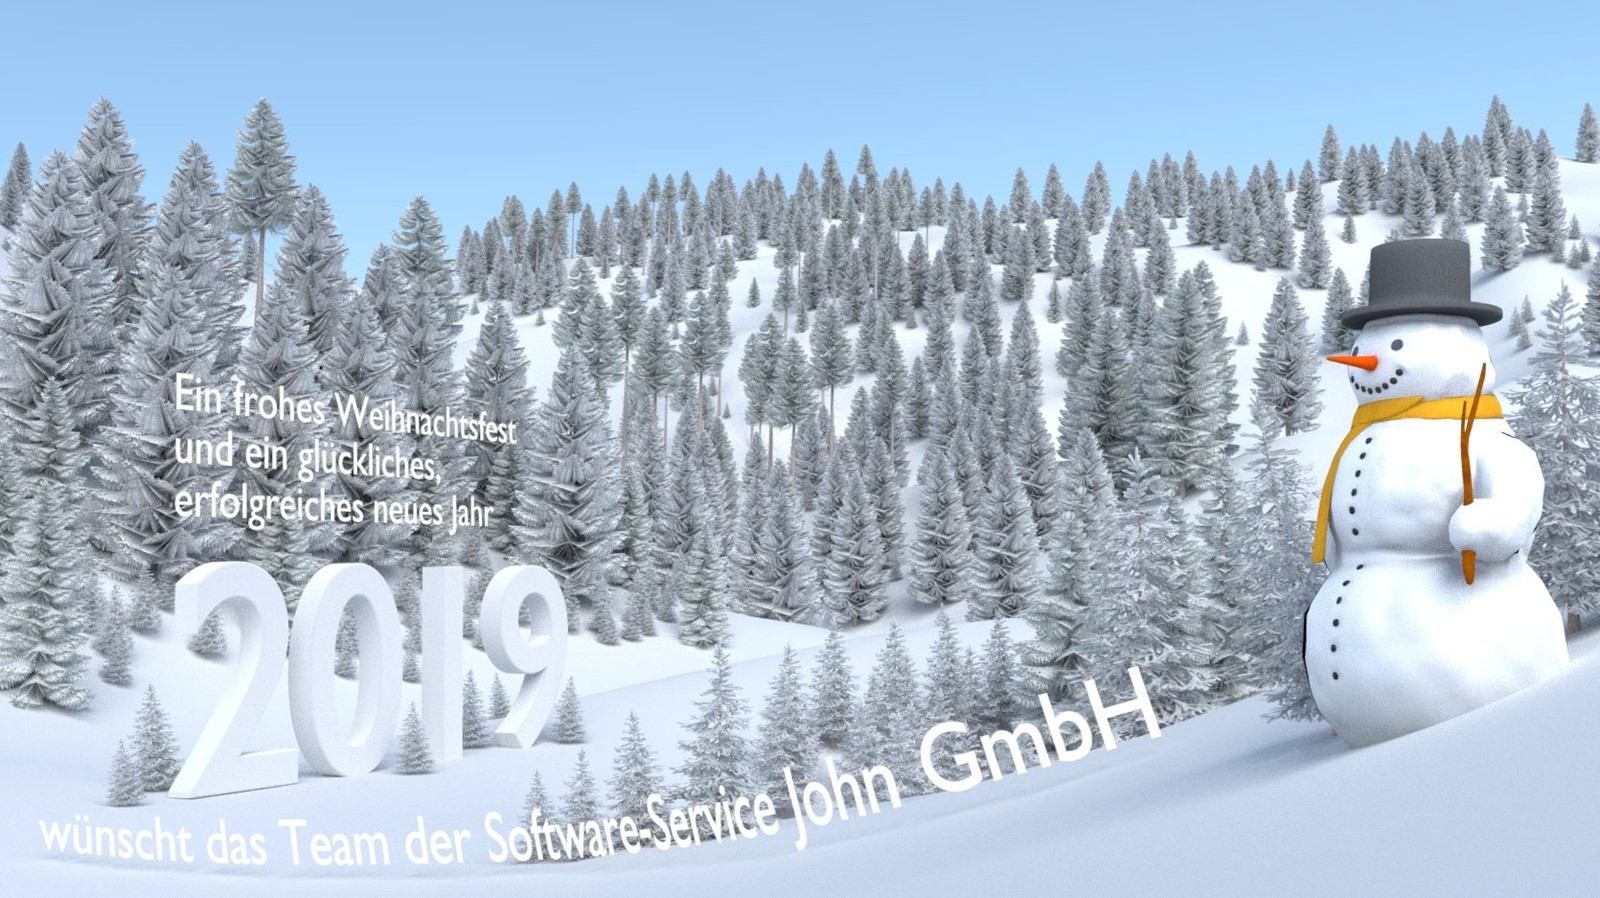 Test-Render 2 with high-poly trees and text in german.